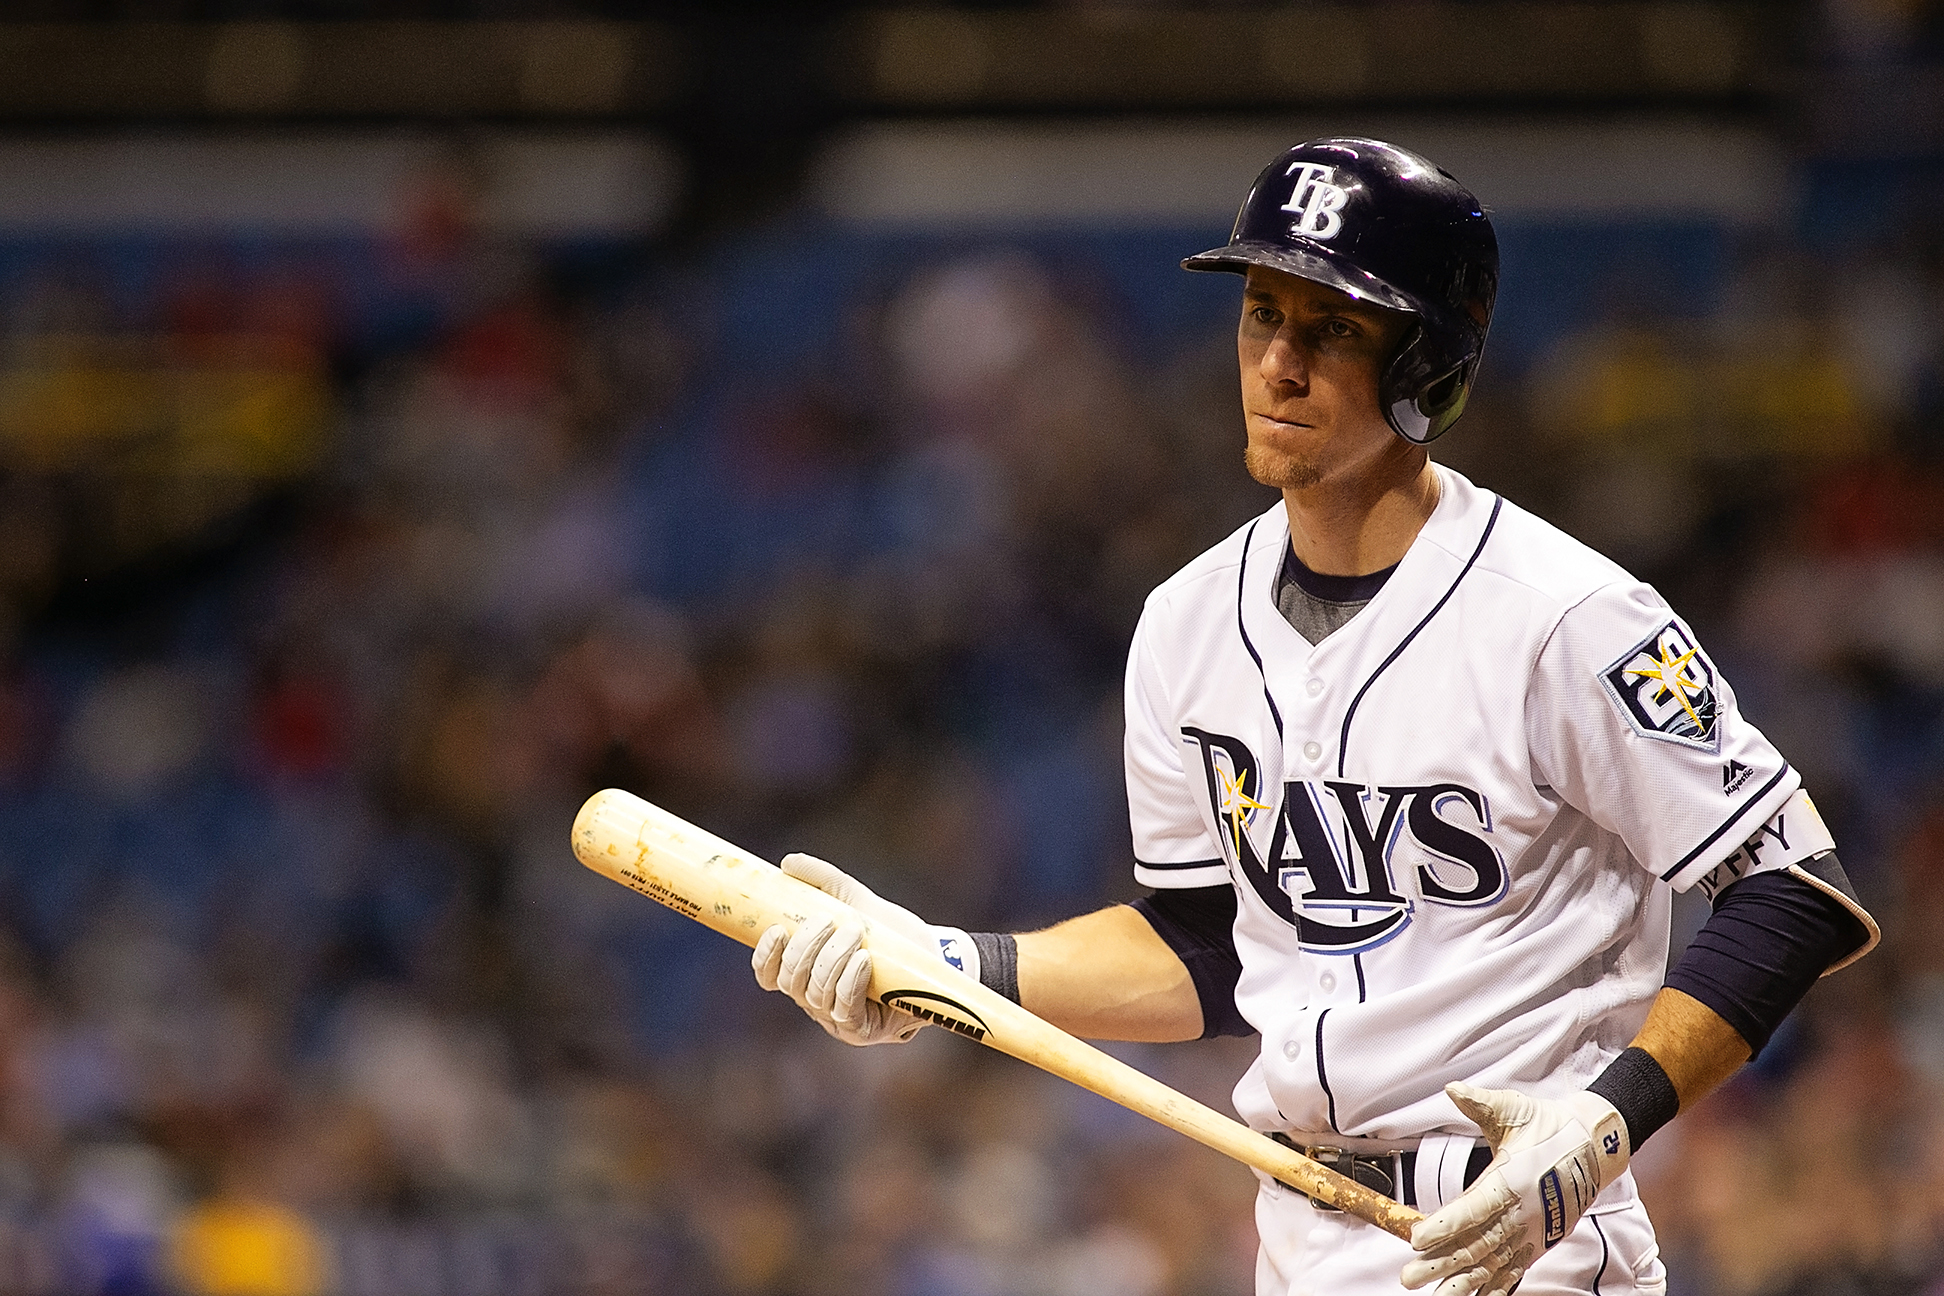 Duffy leads the Rays in batting average./CARMEN MANDATO